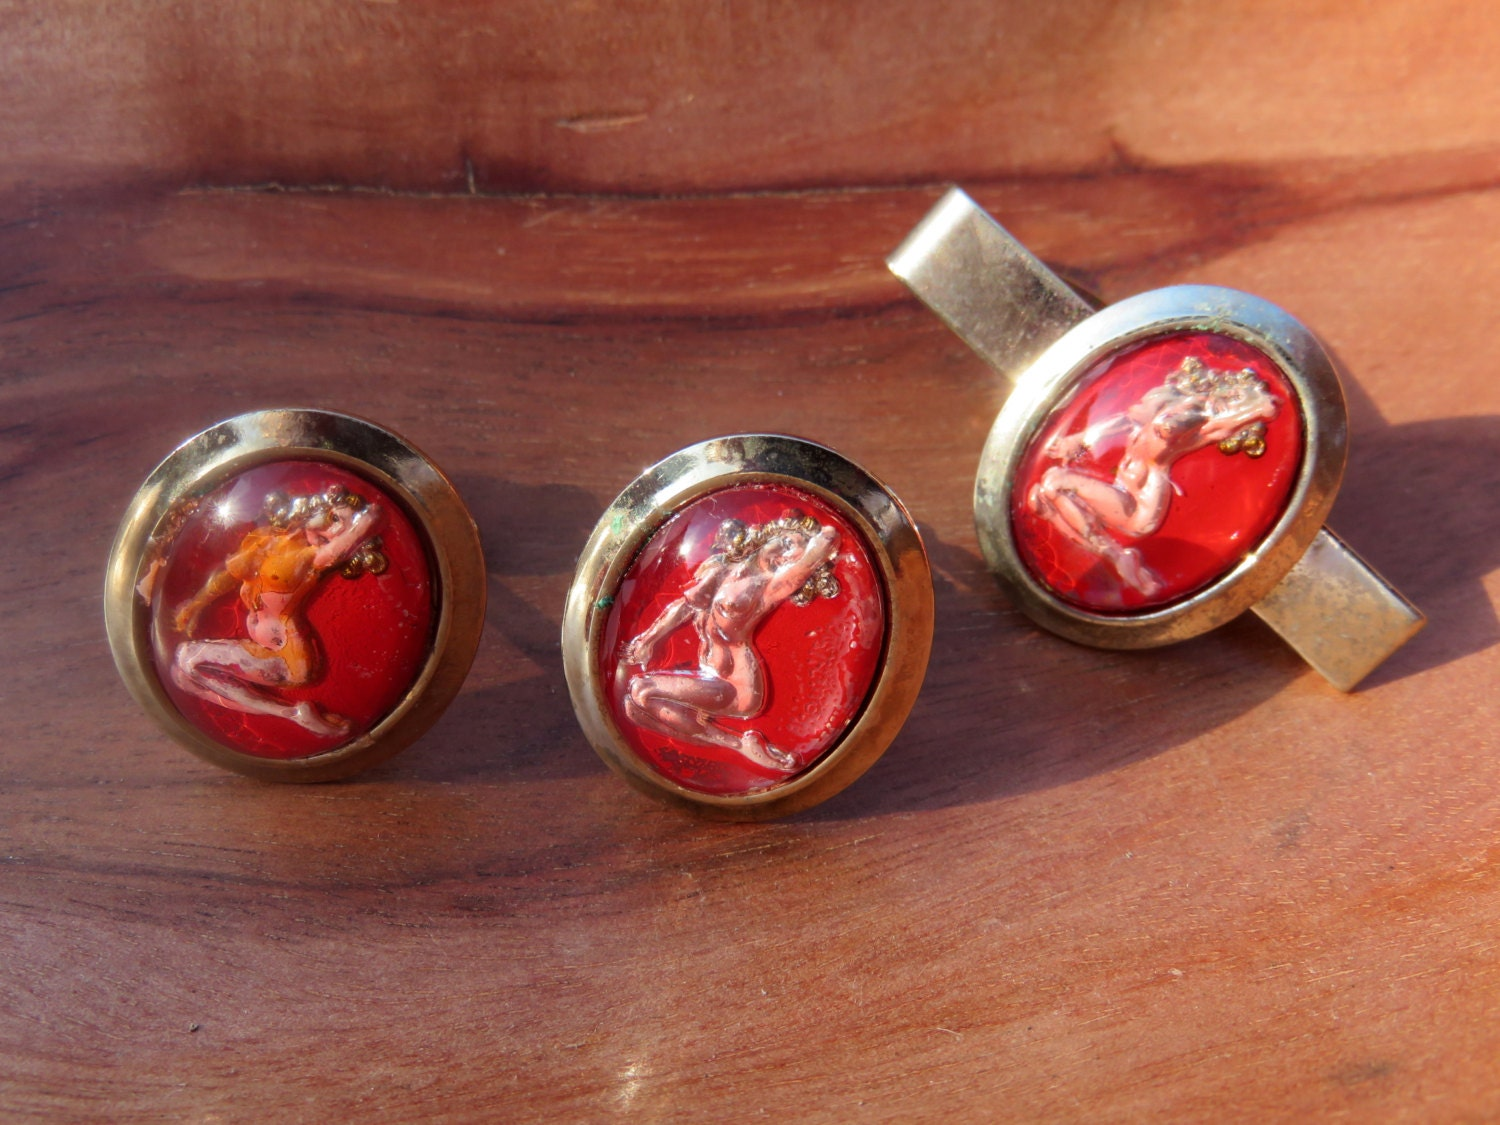 Stylish Men's Cufflinks to Spruce Up Your Accessory Game